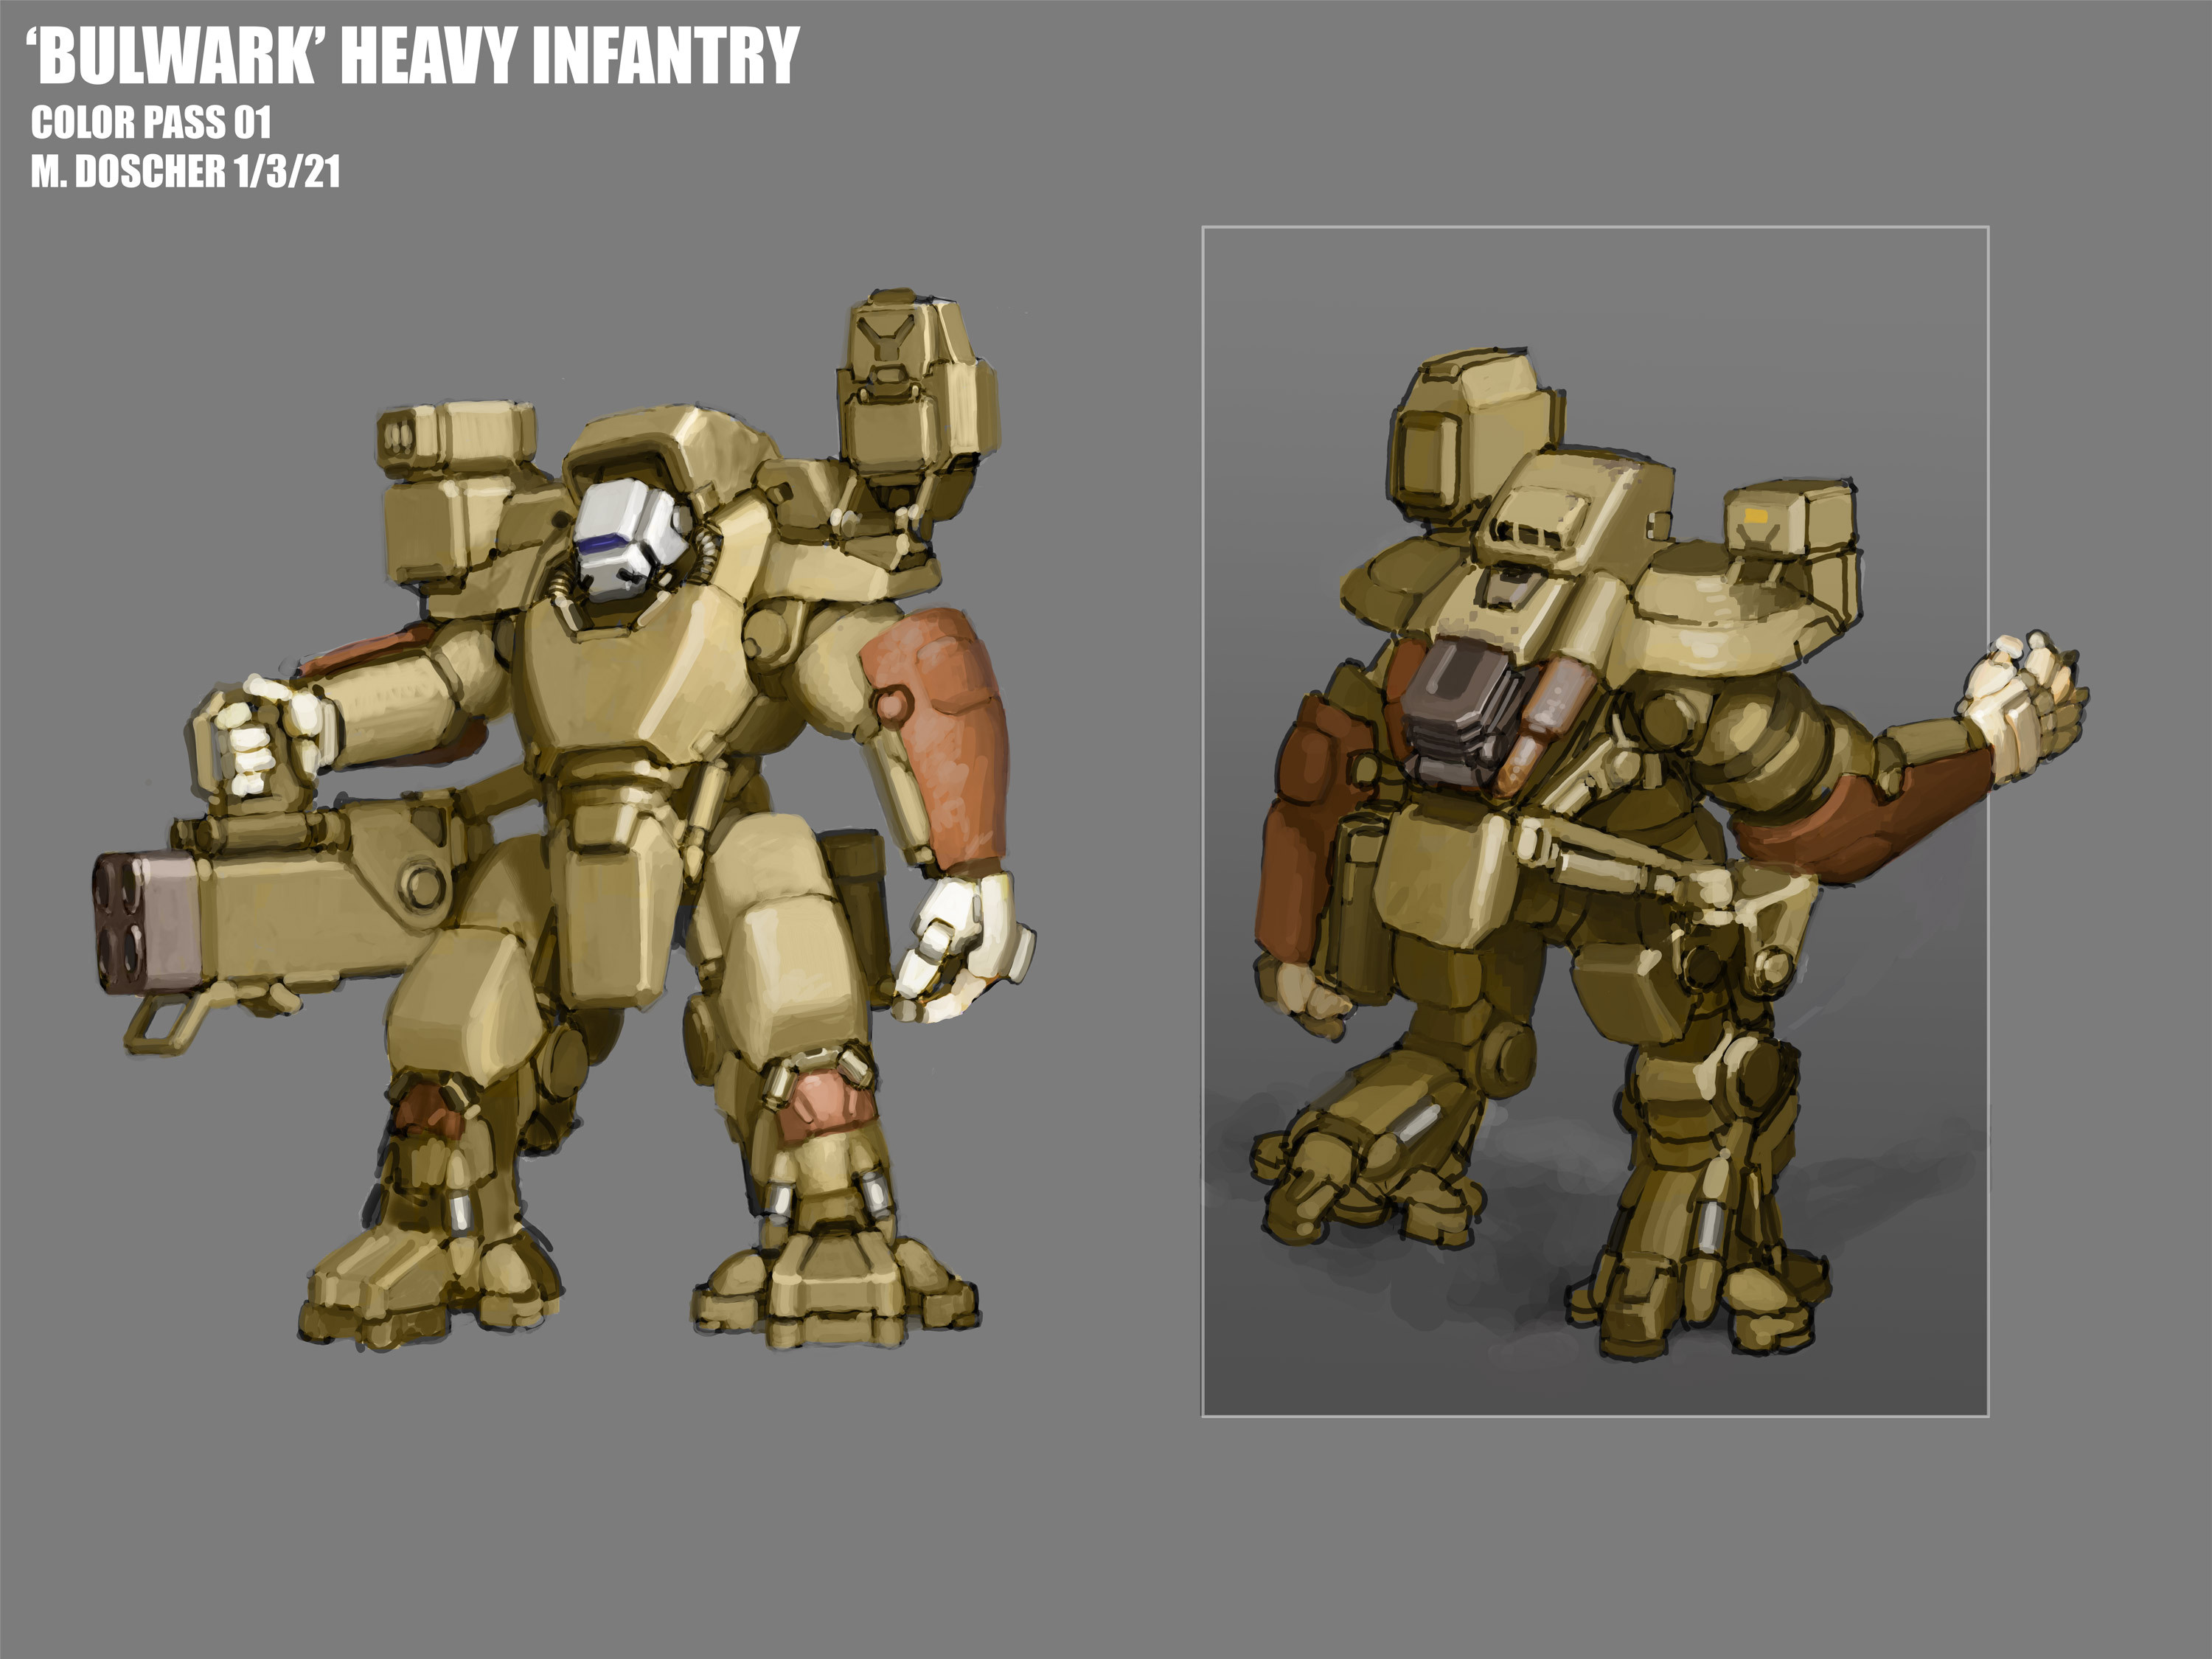 Power armor able to wield a variety of weapons.